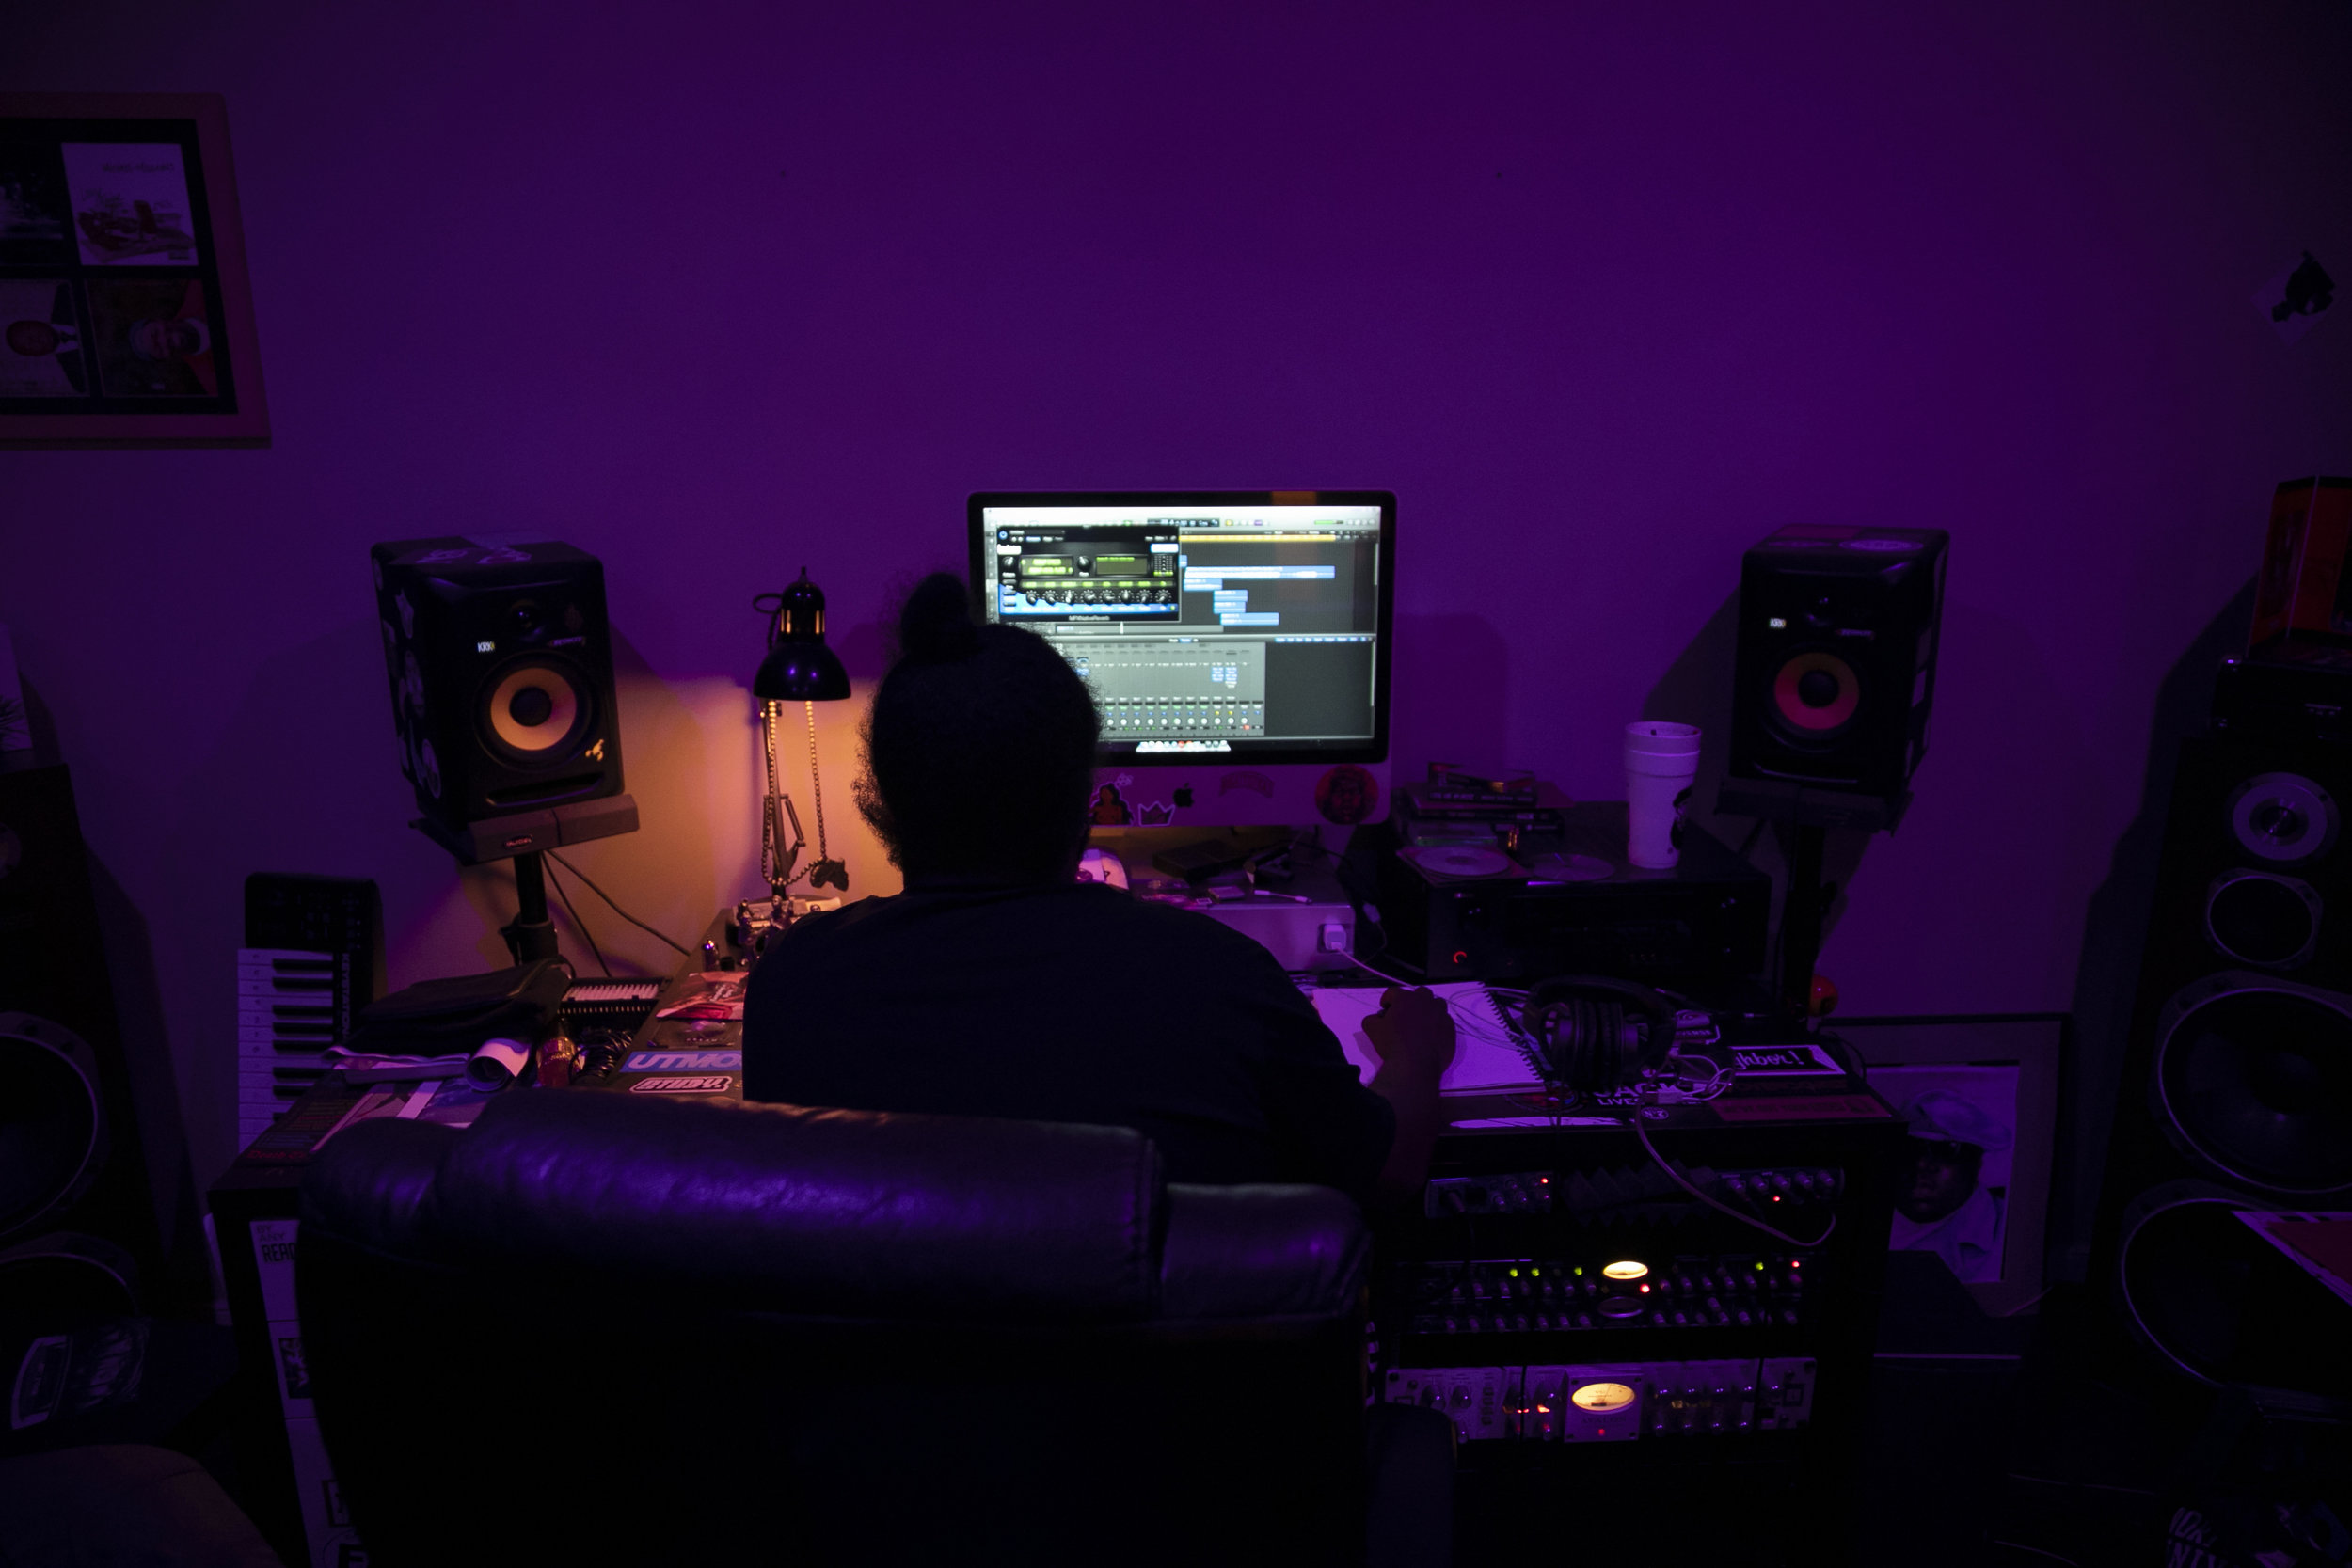 """Mike works a record he's been working on for a few months on April 24, 2019 in Richmond Virginia. He hasn't been totally focused on his own music for the past couple months. """"I have a lot engineering stuff I have to knock out the way before i can fully get back into it,"""" Mike said"""